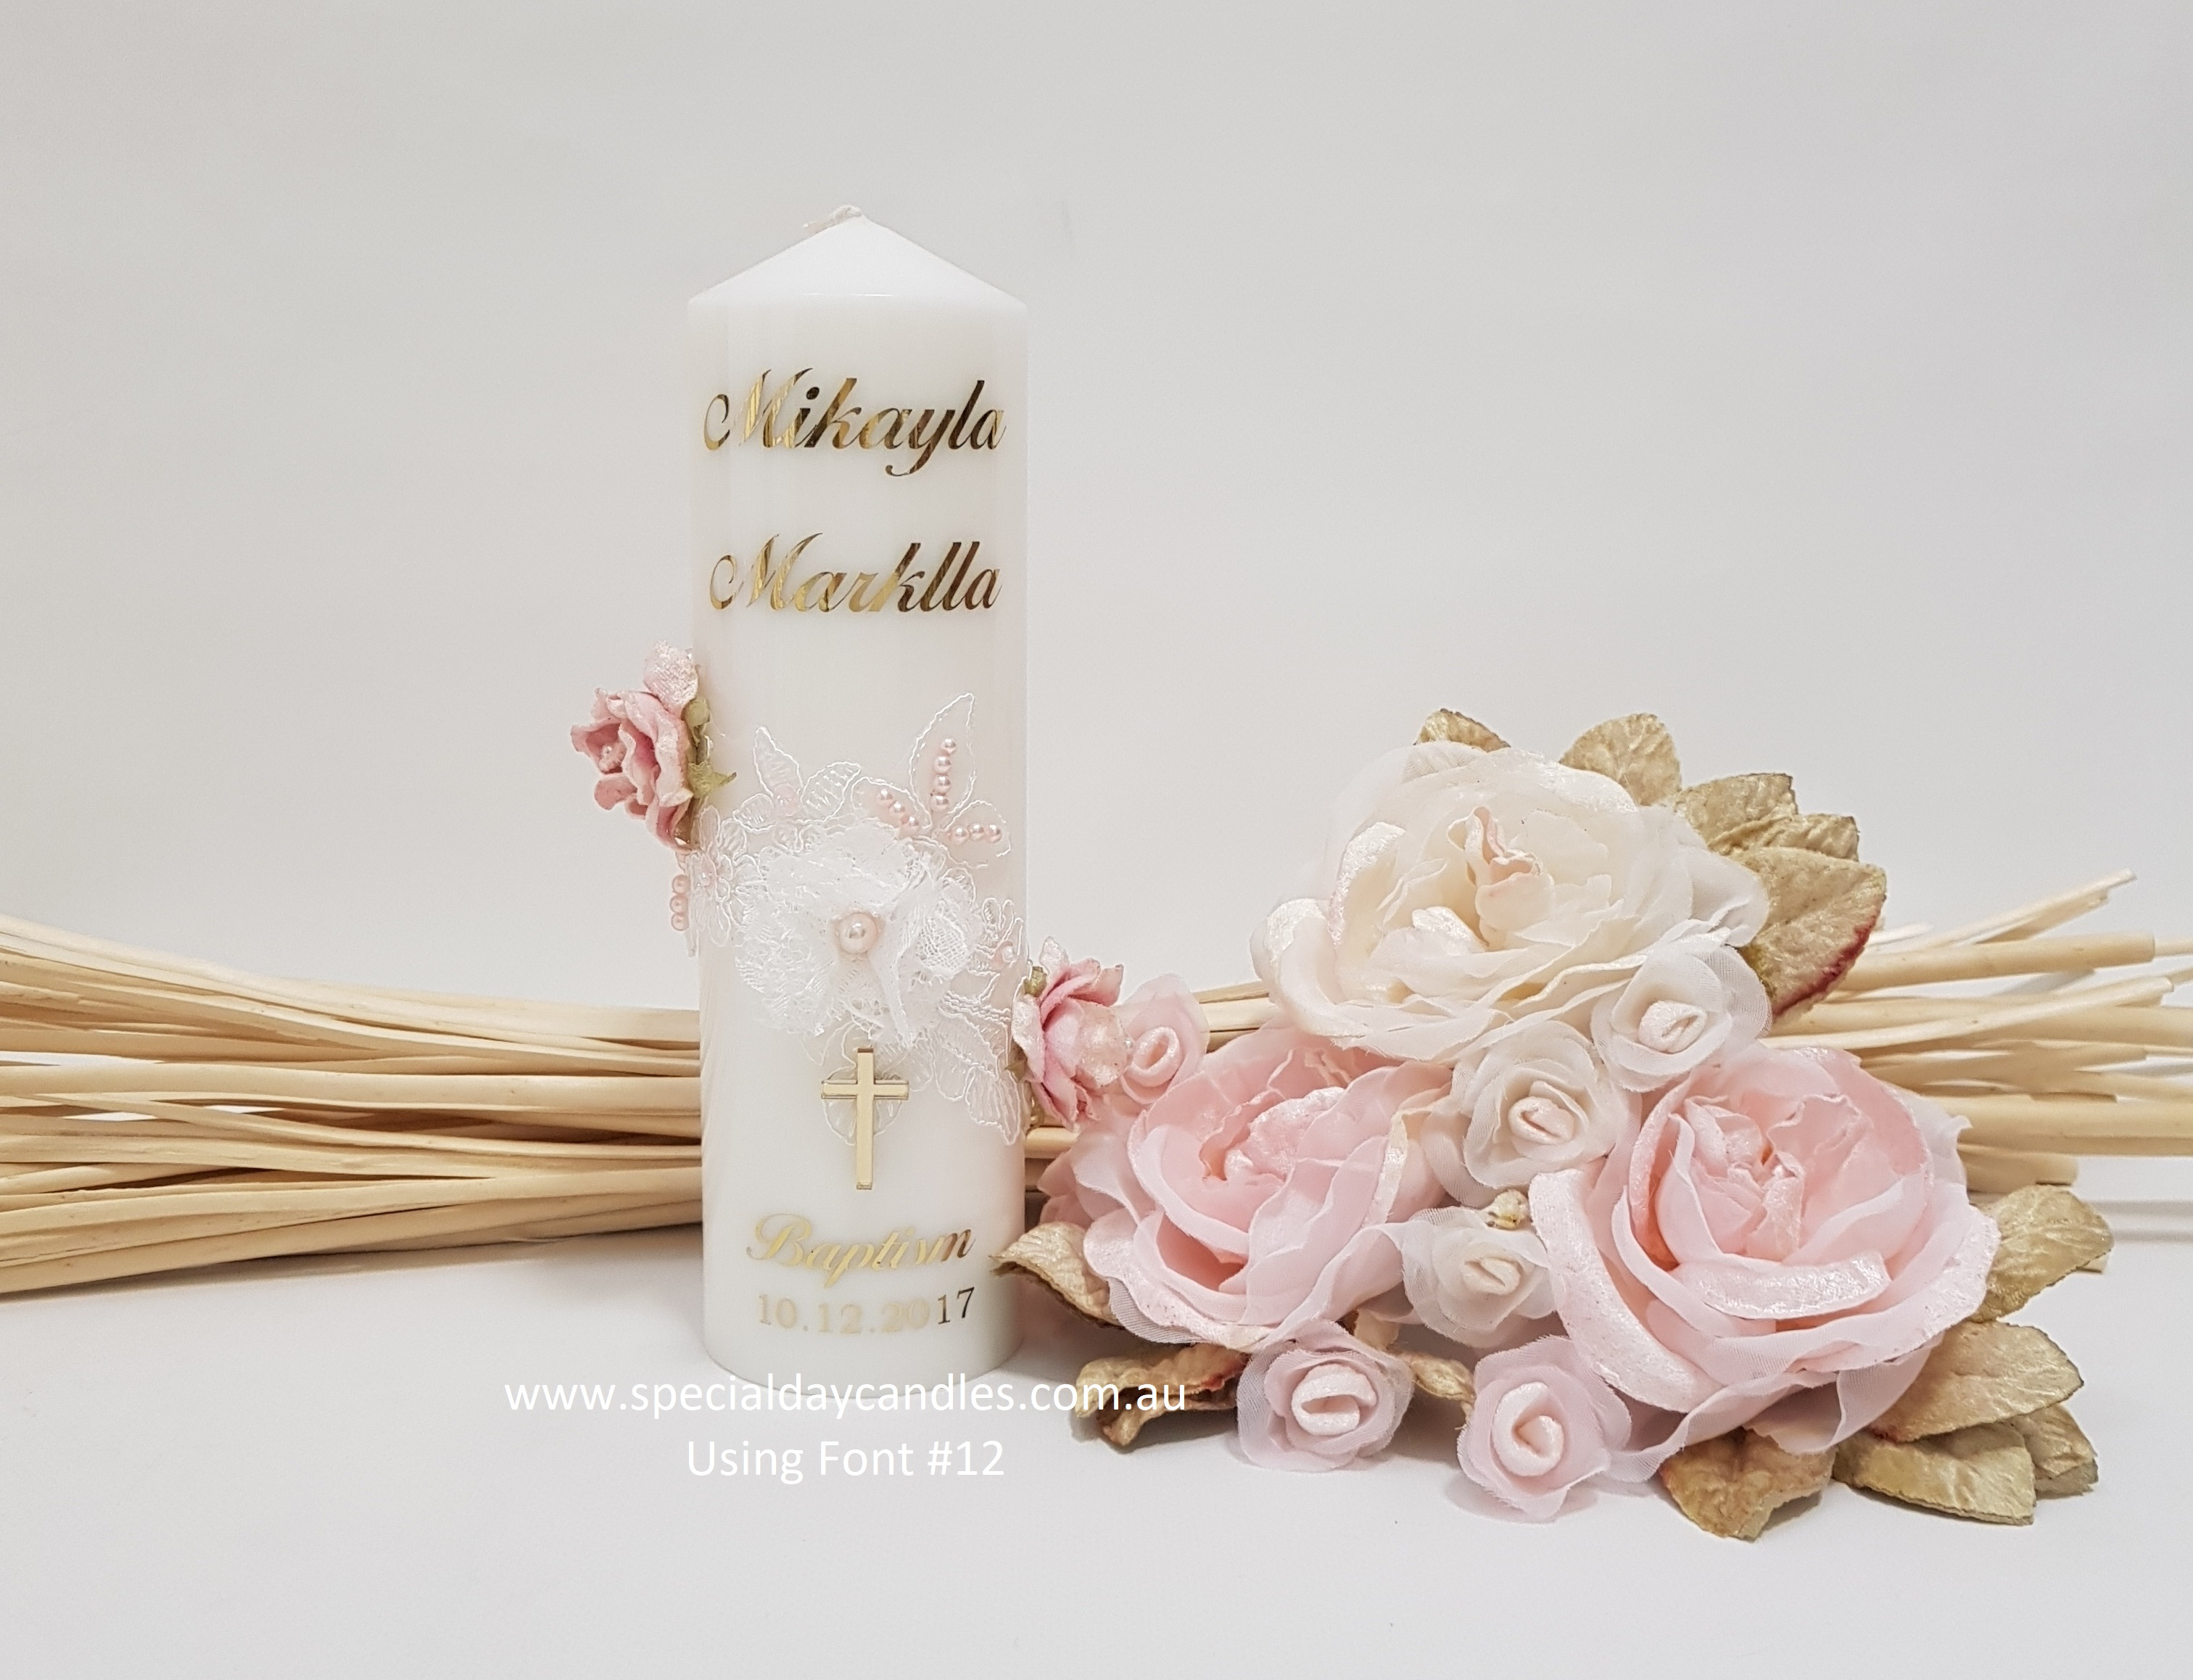 christening-baptism-personalised-candle-gold-foil-n31f12&f6